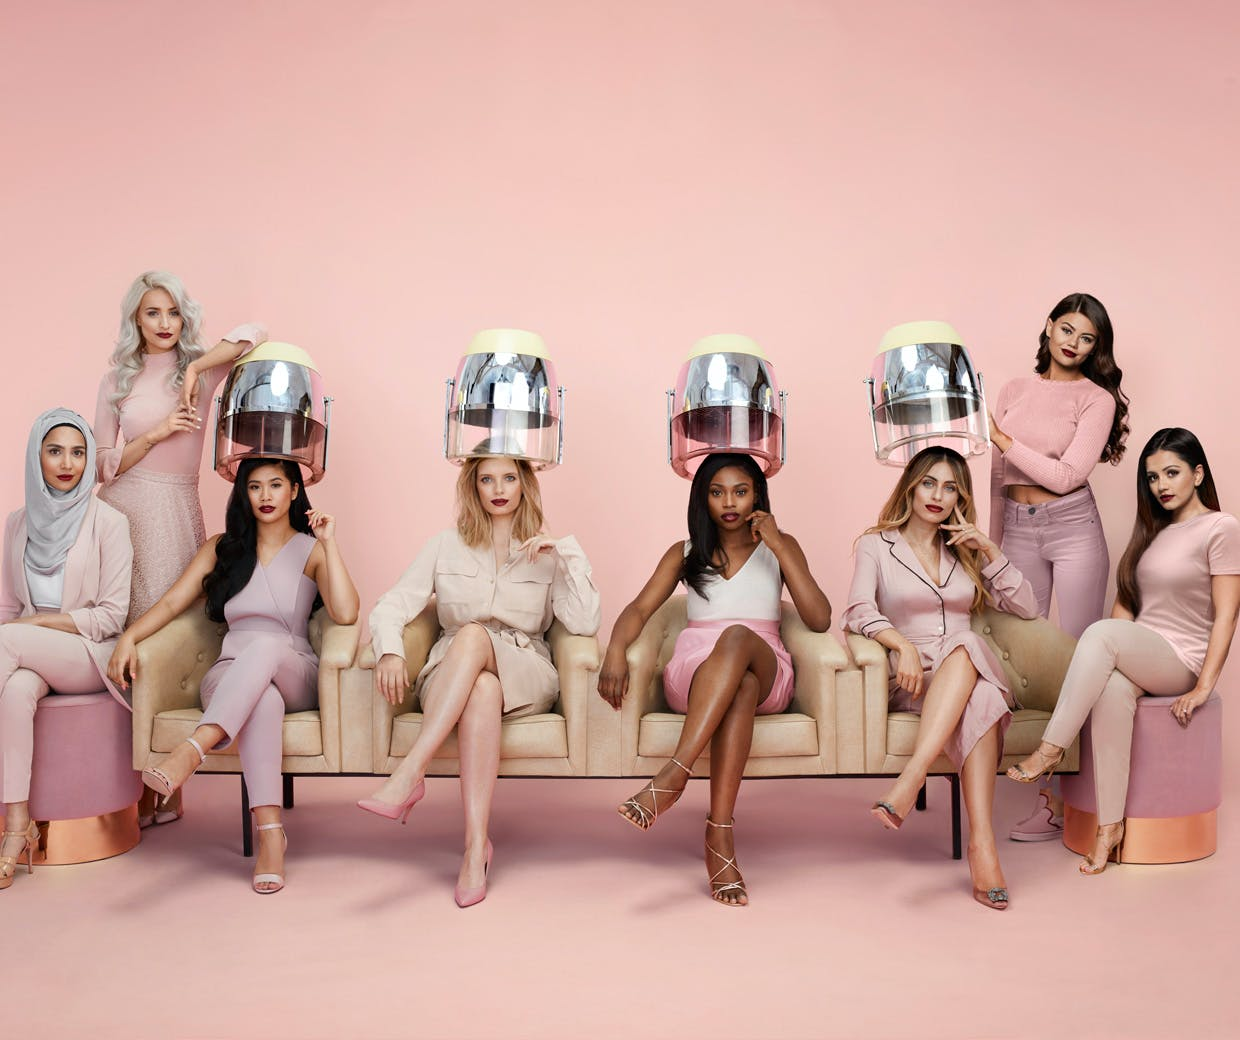 L'Oréal Paris increases budget behind influencers as it boasts sales uplift